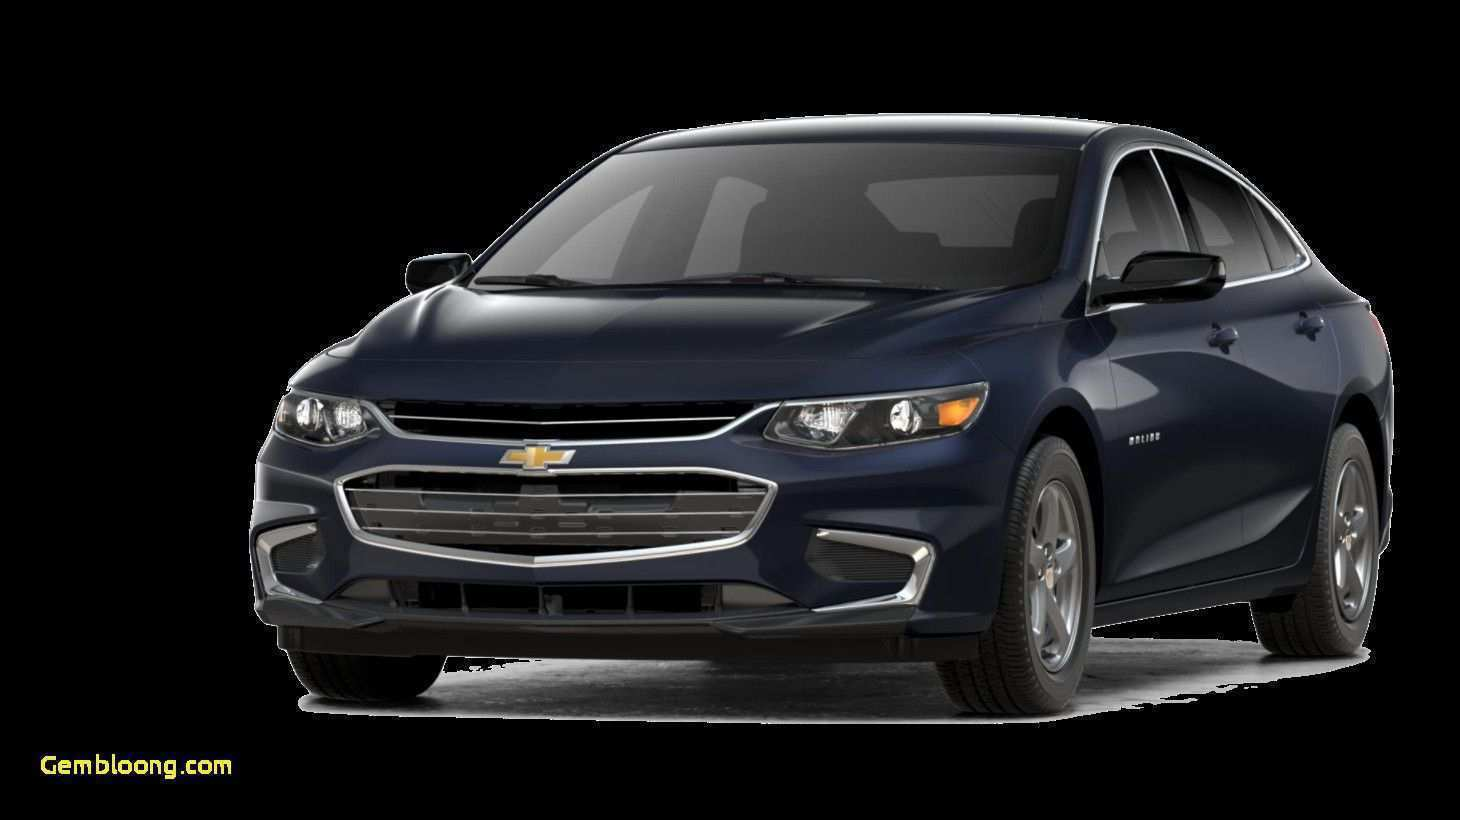 40 Best 2020 Chevy Malibu Price And Release Date